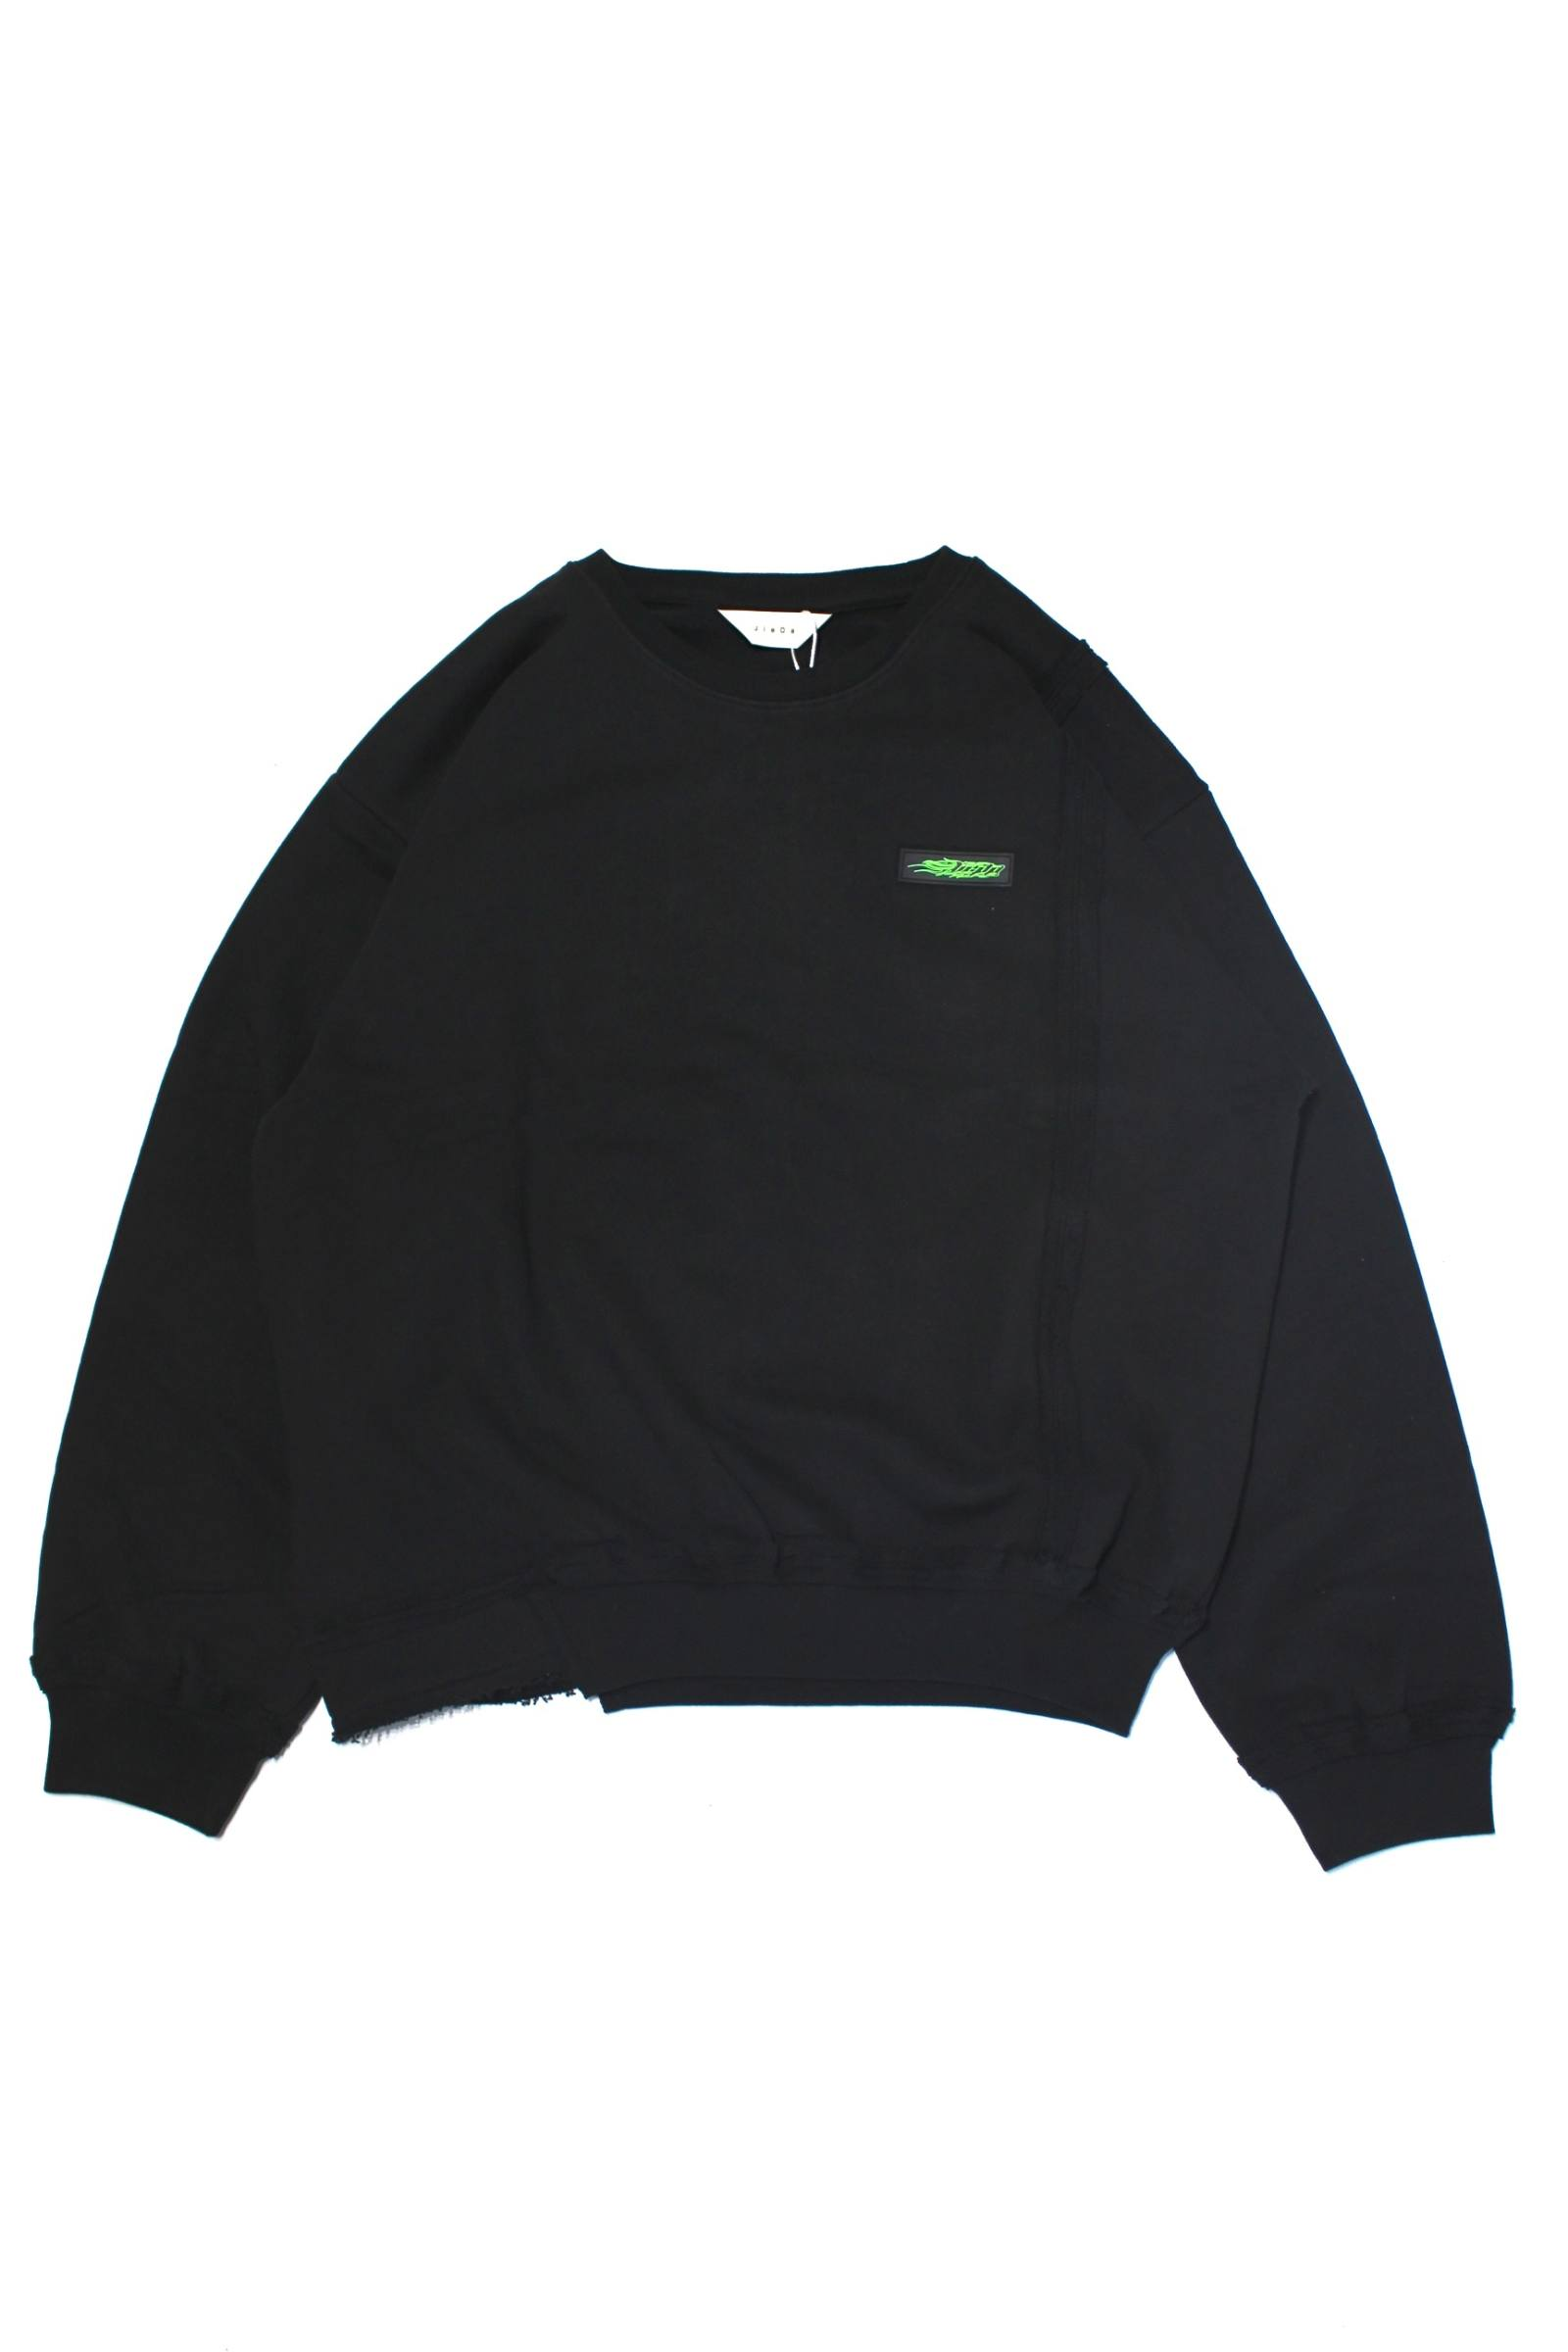 SILICON JieDa LOGO SWITCHING SWEAT SHIRT/スウィッチスウェット